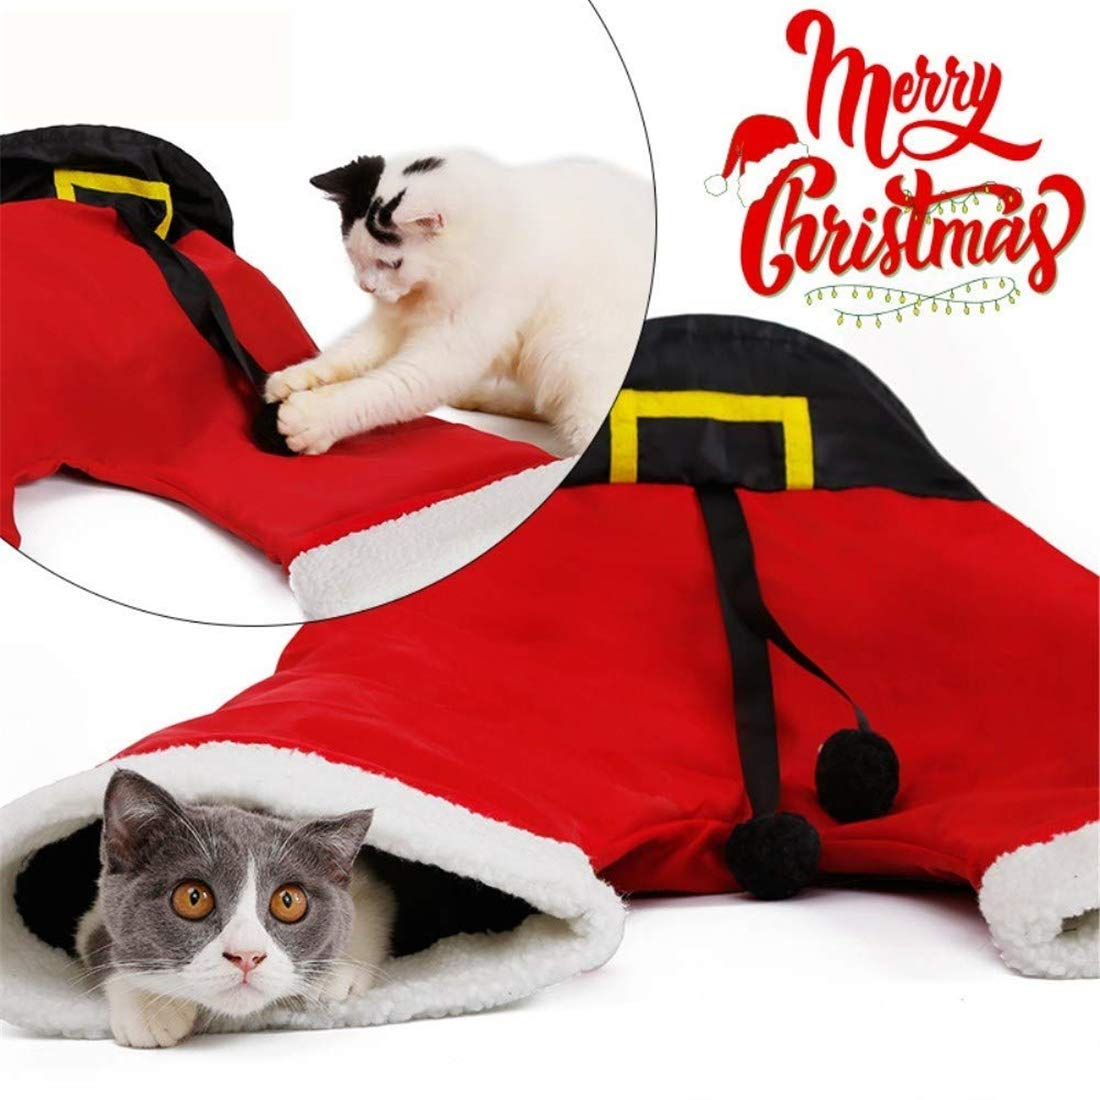 Christmas Santa Pants Pet Cat Tunnel Collapsible 3 Way Play Toy Interactive Tube Fun Toys for Cats Kitten Rabbit,1piece